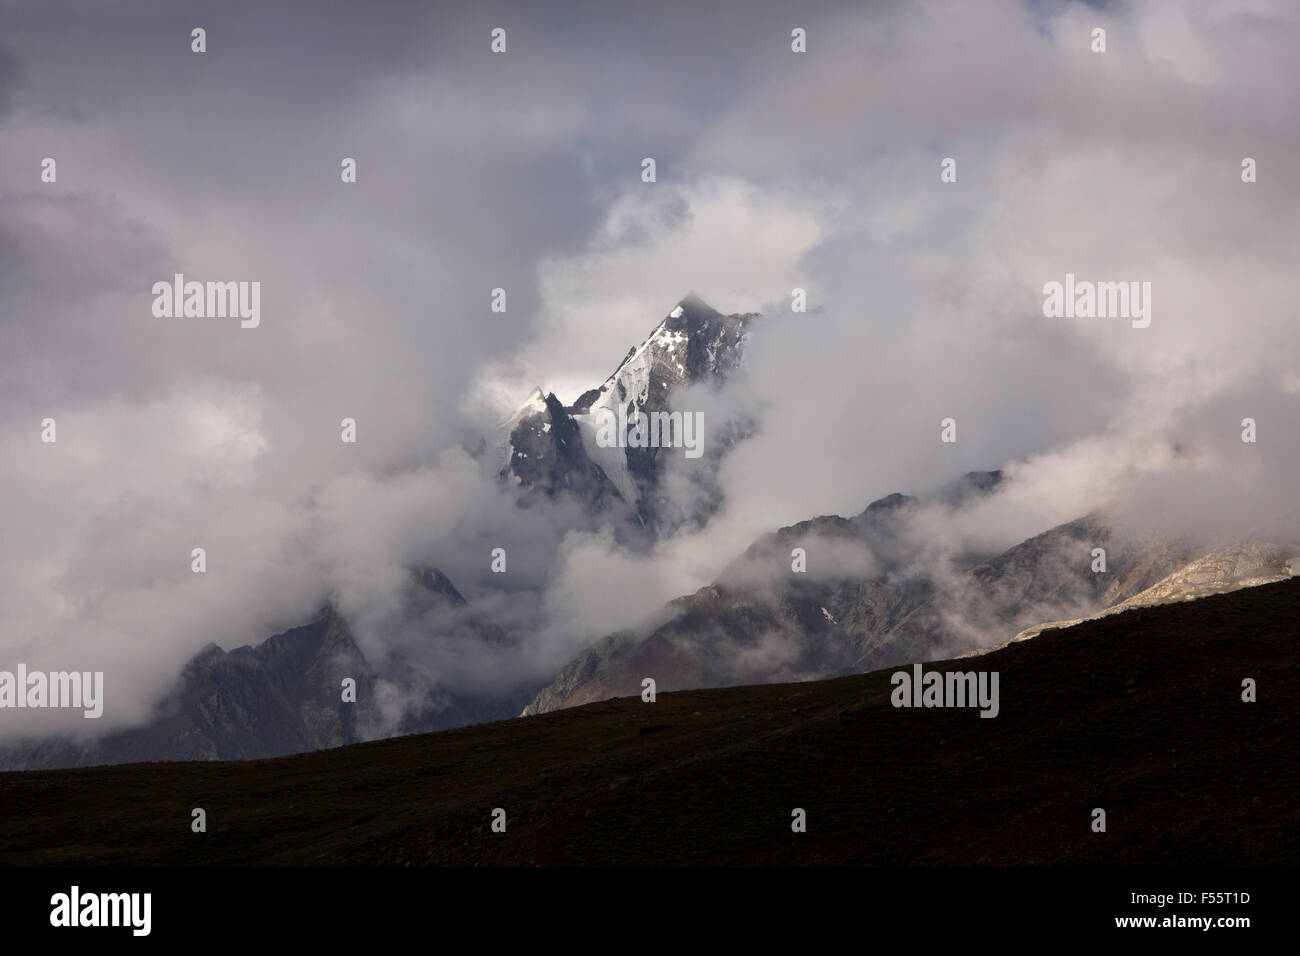 India, Himachal Pradesh, Spiti, Chandra Taal, Snow capped Bhaga Mountains glimpsed through early morning cloud - Stock Image